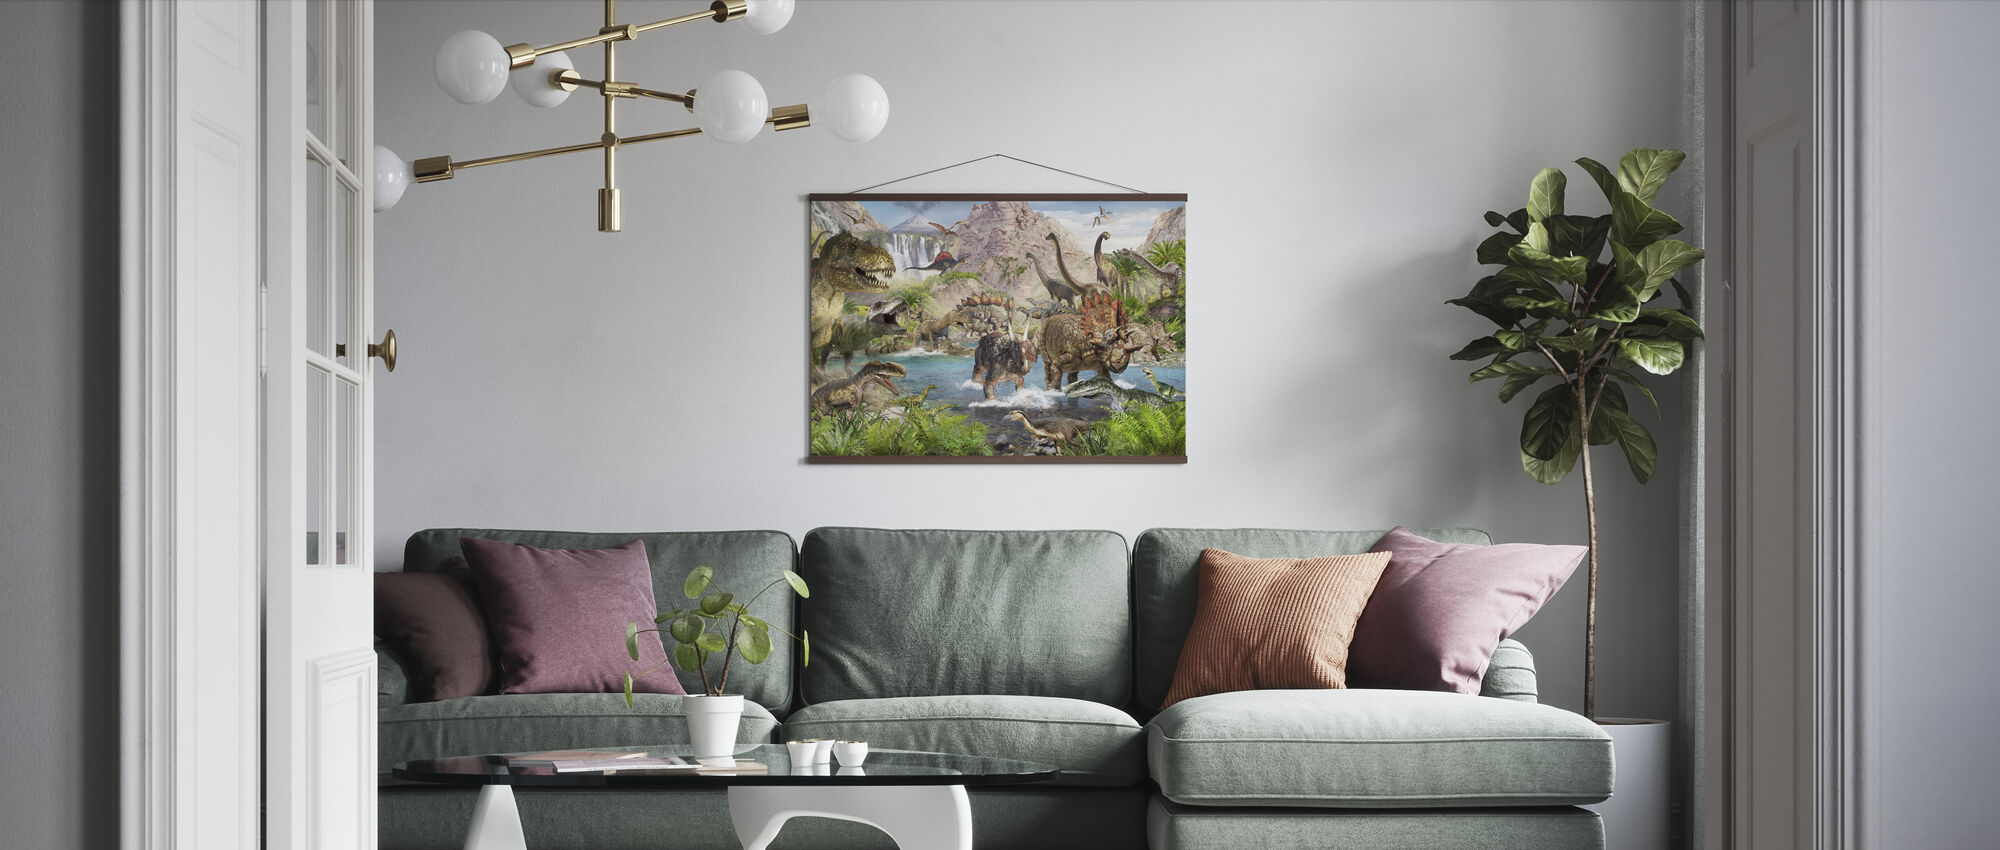 Dinosaur World - Poster - Living Room